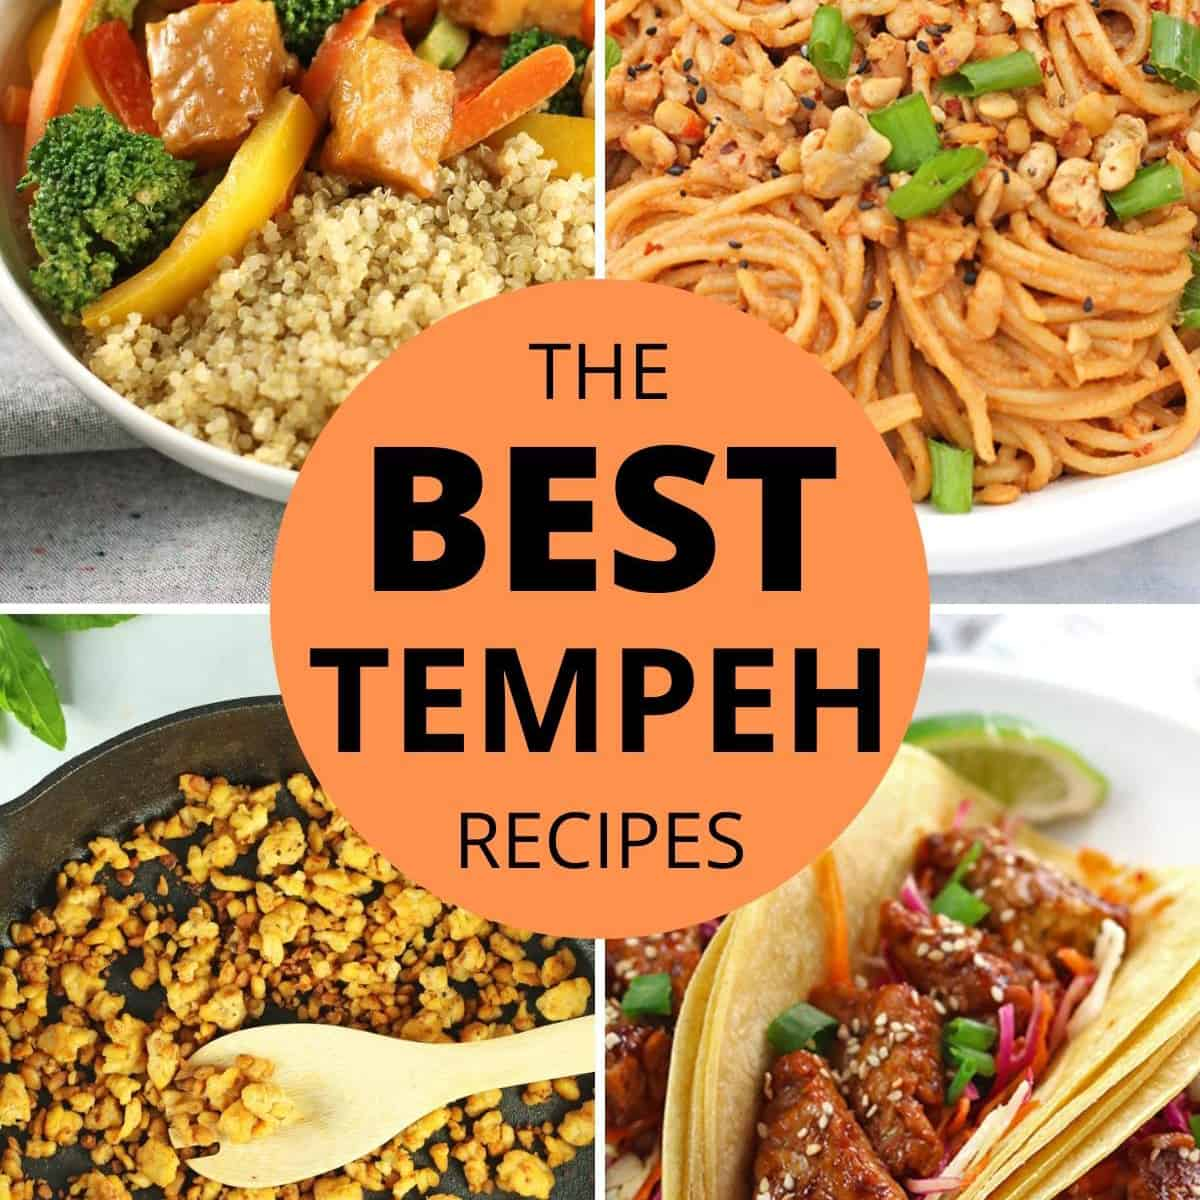 """4 tempeh recipes with """"the best tempeh recipes"""" on top of them in an orange circle"""